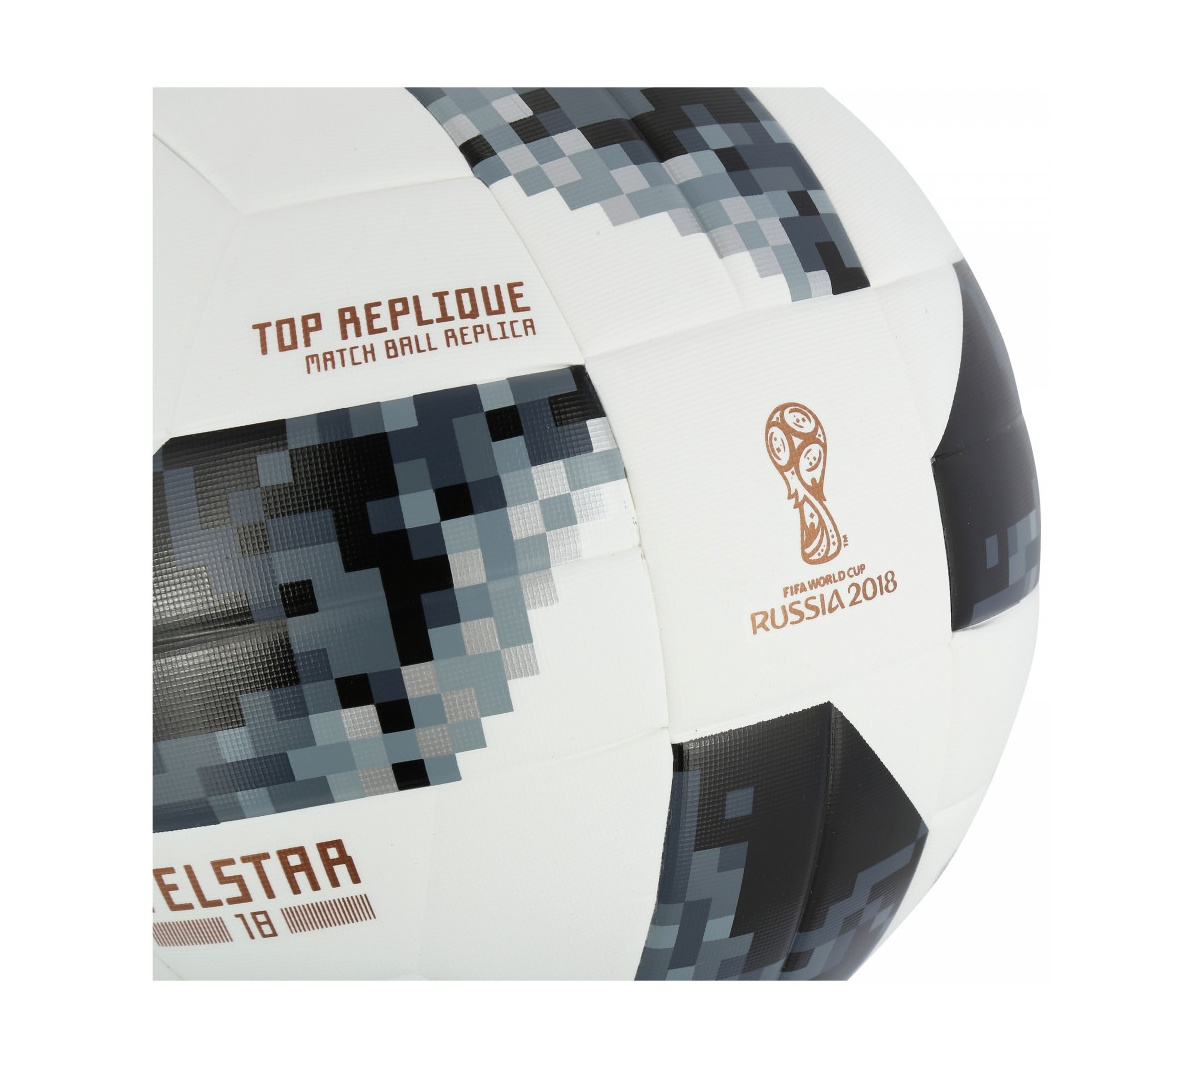 Bola Adidas Telstar Oficial Copa do Mundo FIFA 2018  Top Replique X